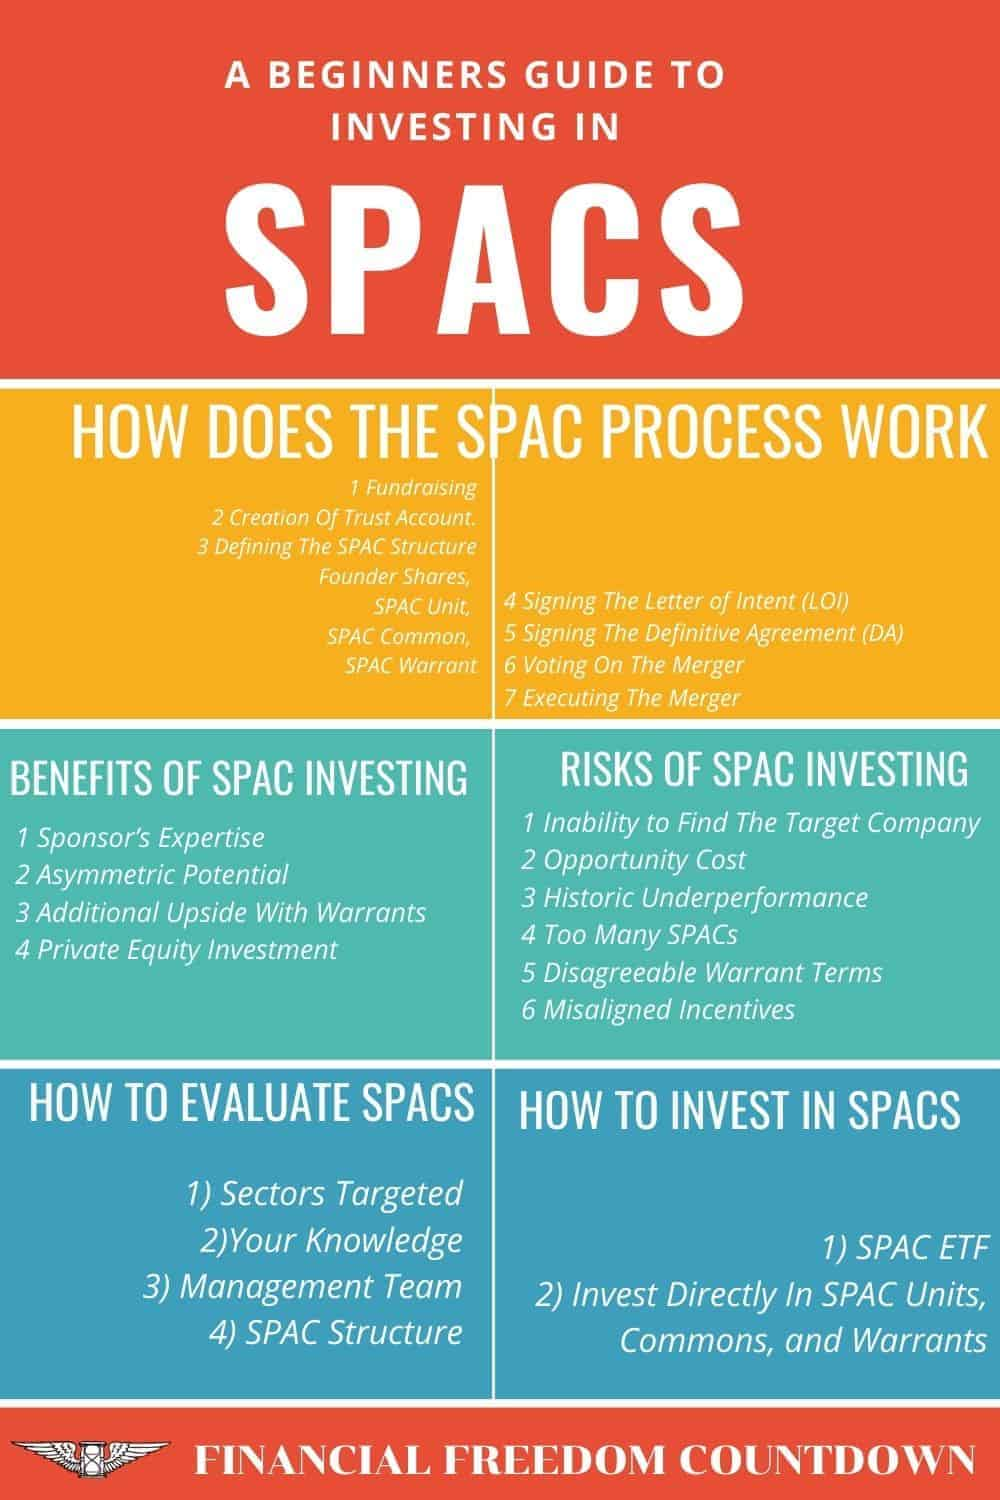 What Is A SPAC And The SPAC Process And How To Evaluate If It Is Worth Investing With Pros And Cons